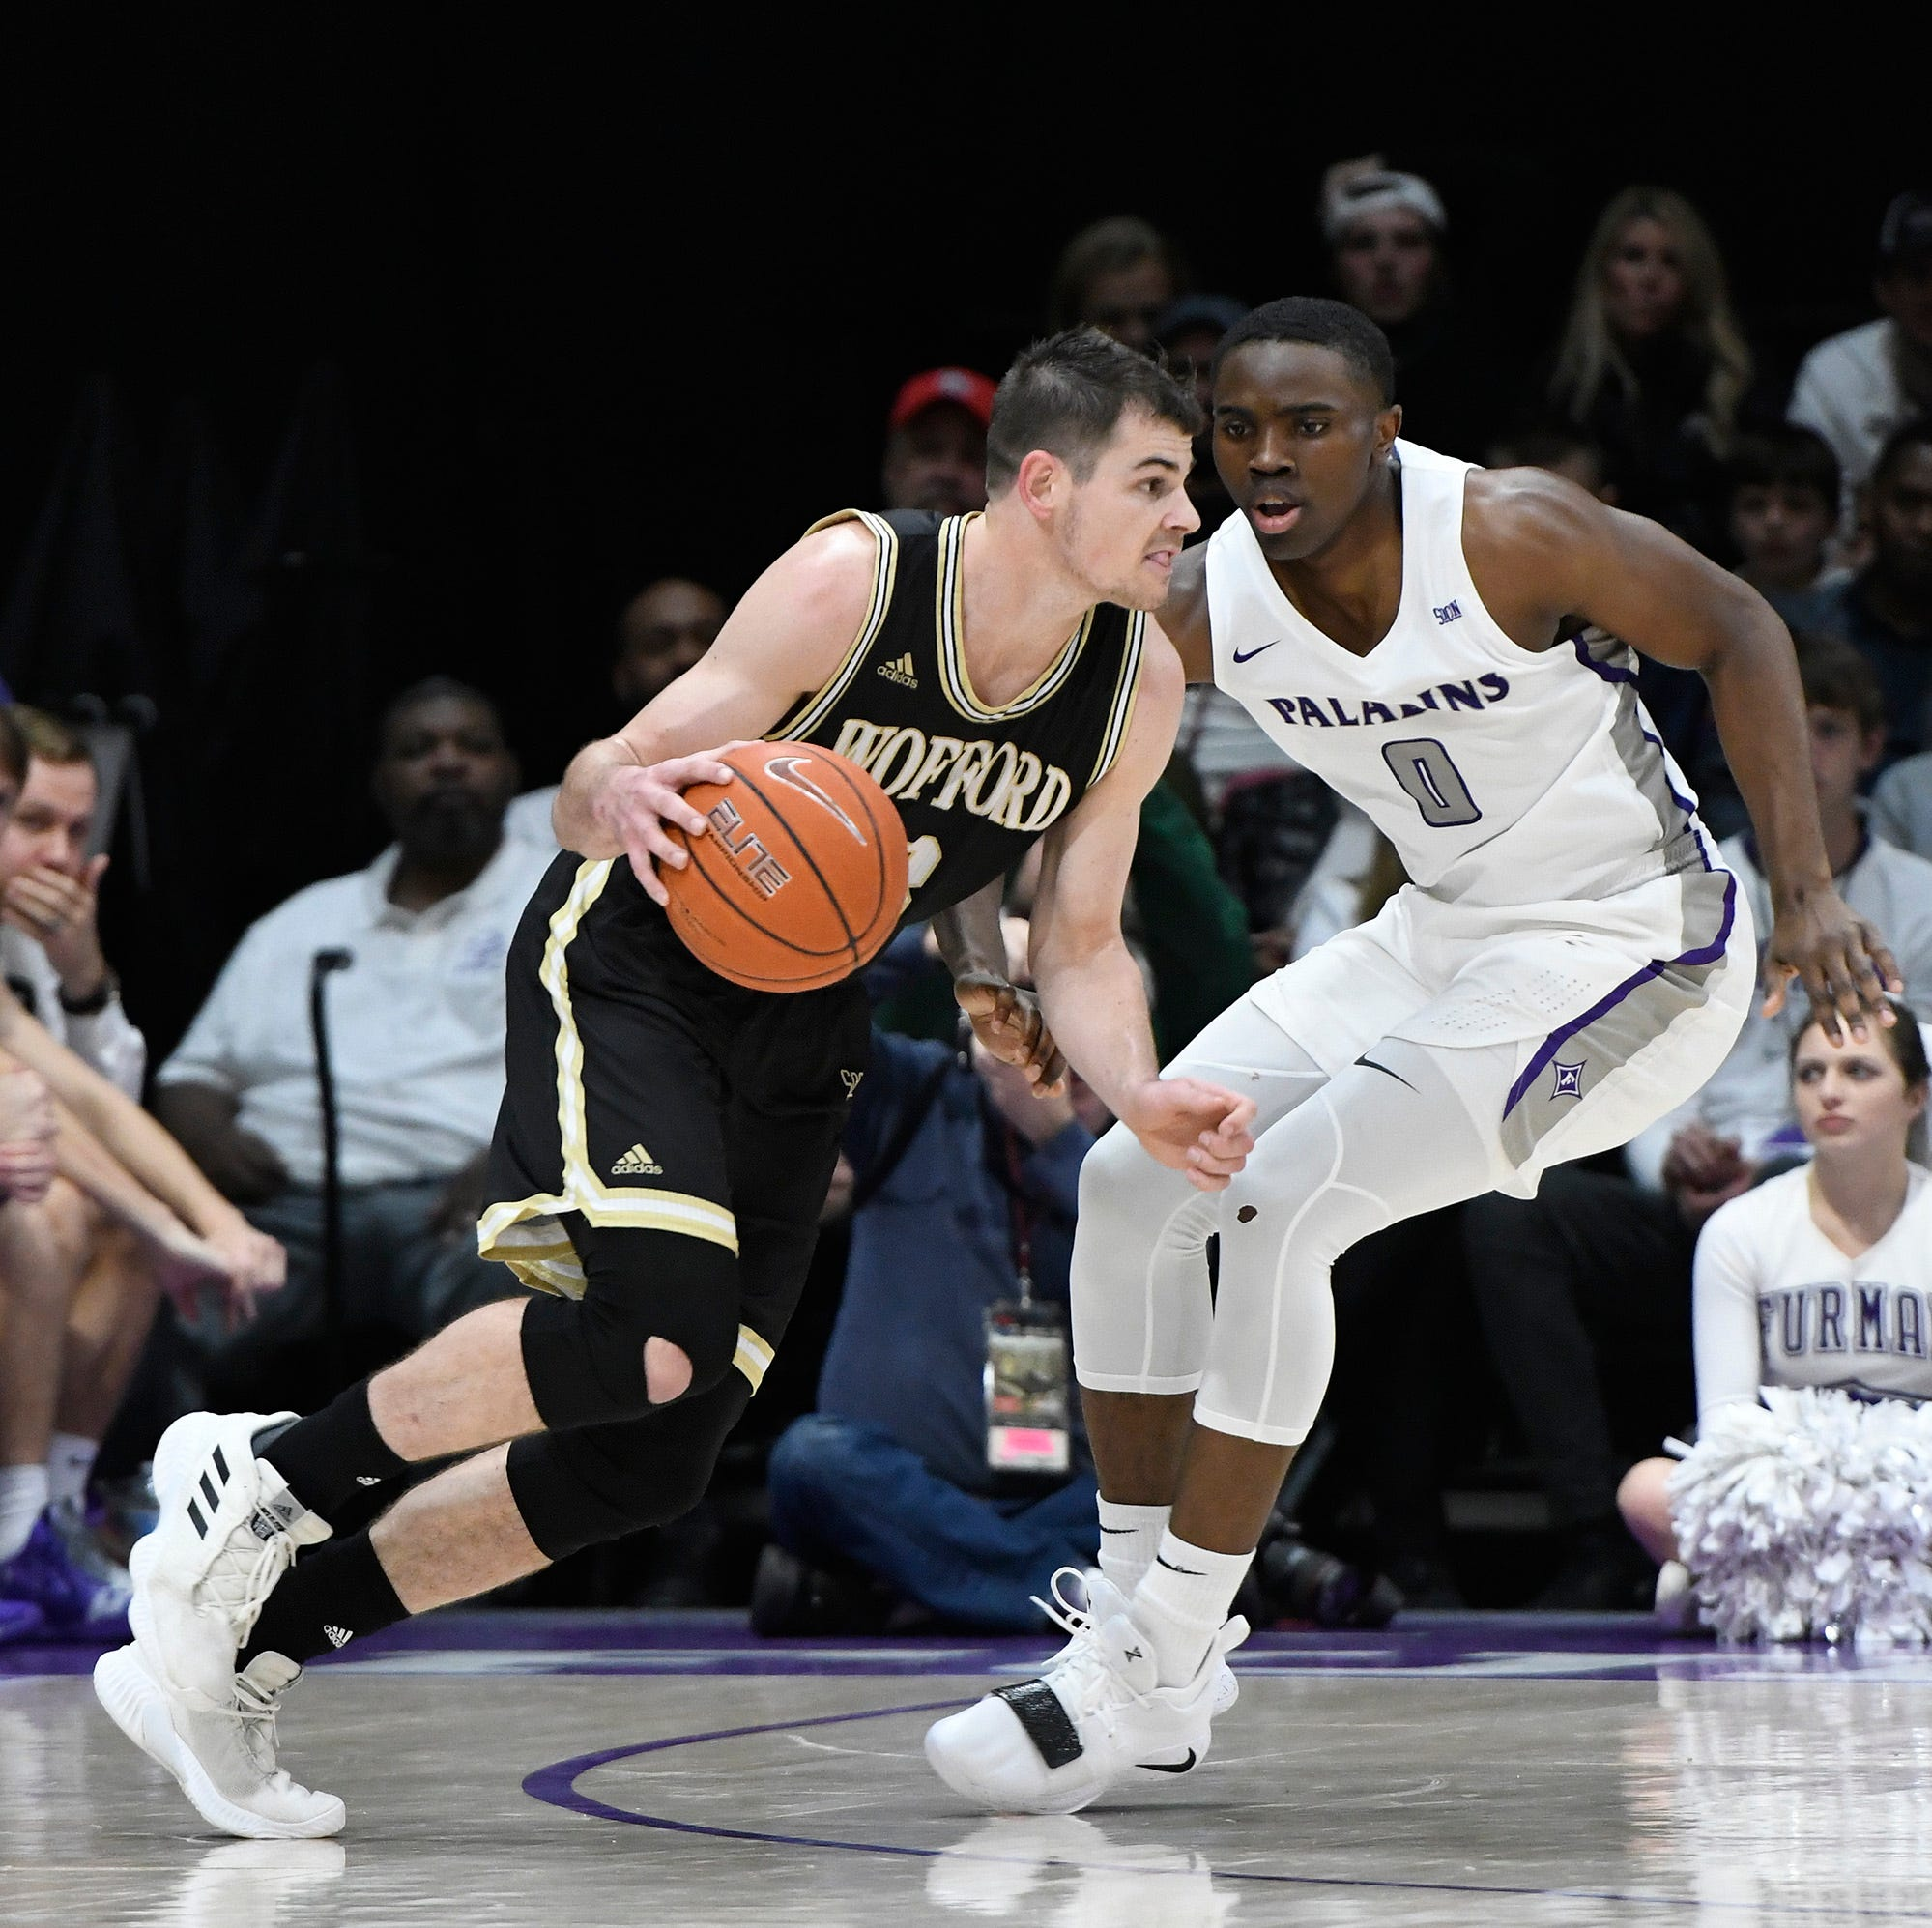 Wofford, Furman could give SoCon 2 NCAA Tournament bids for 1st time in league history